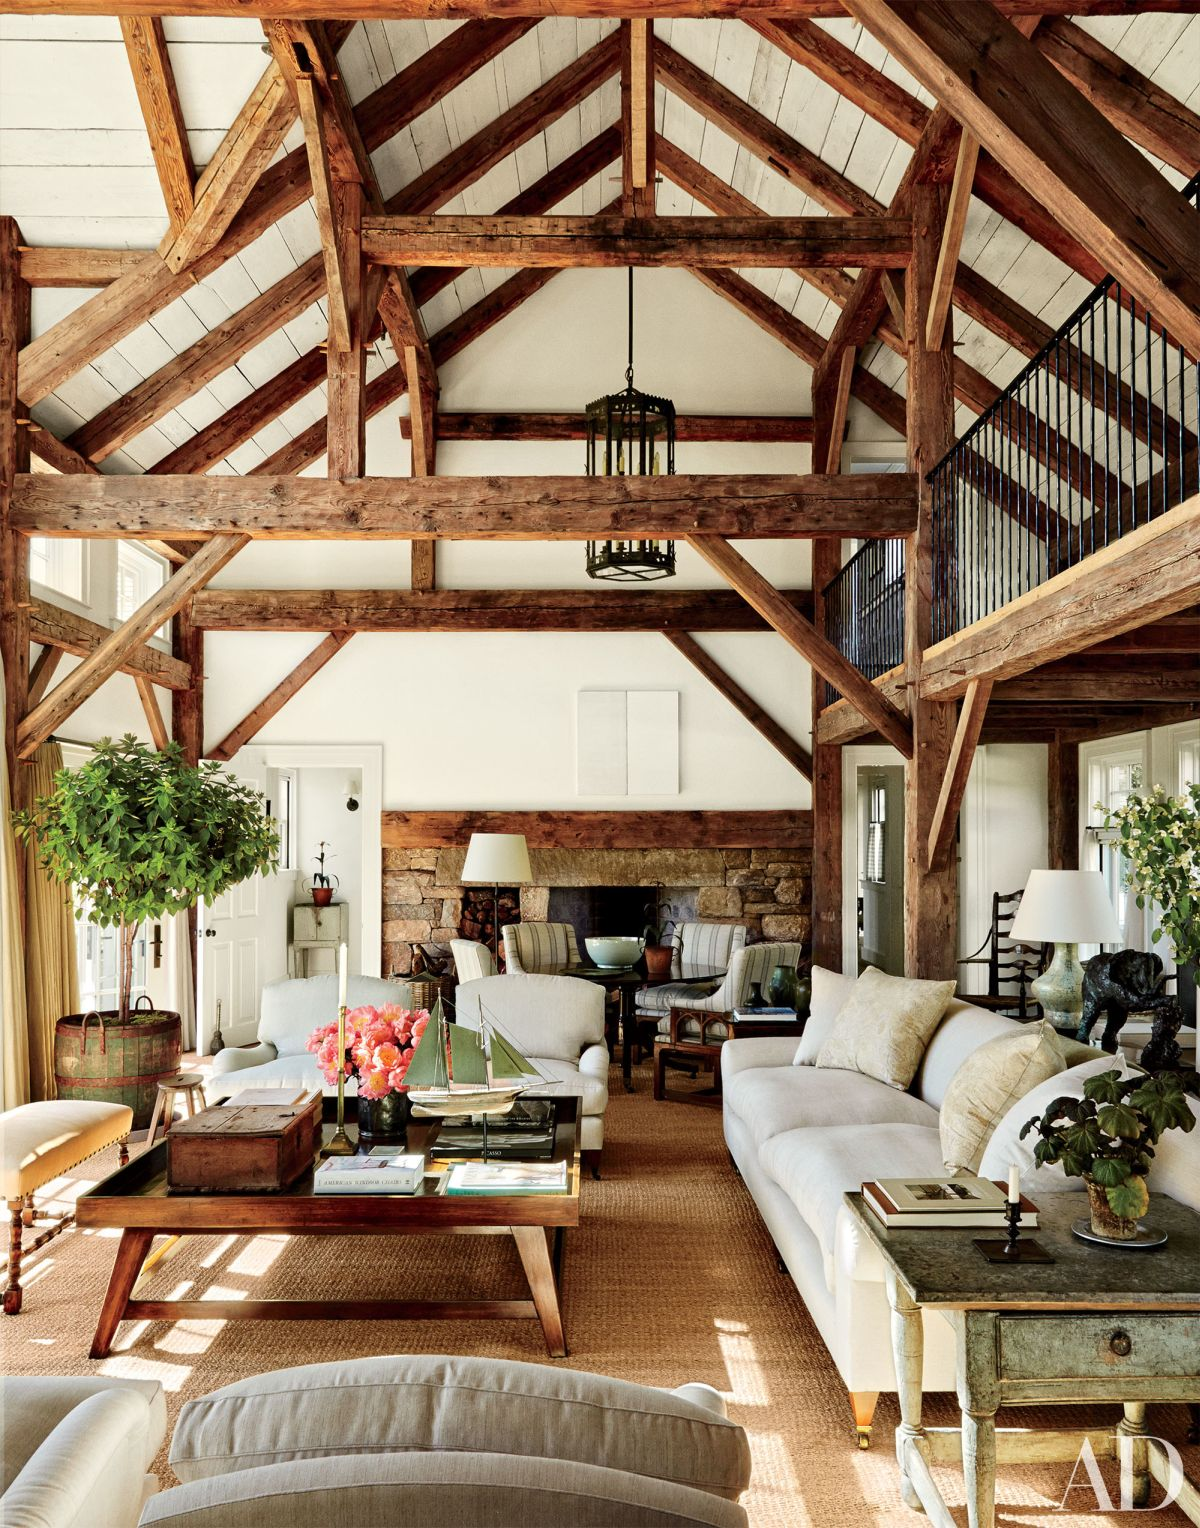 Ceiling Beams Ideas ~ Expose your rusticity with exposed beams